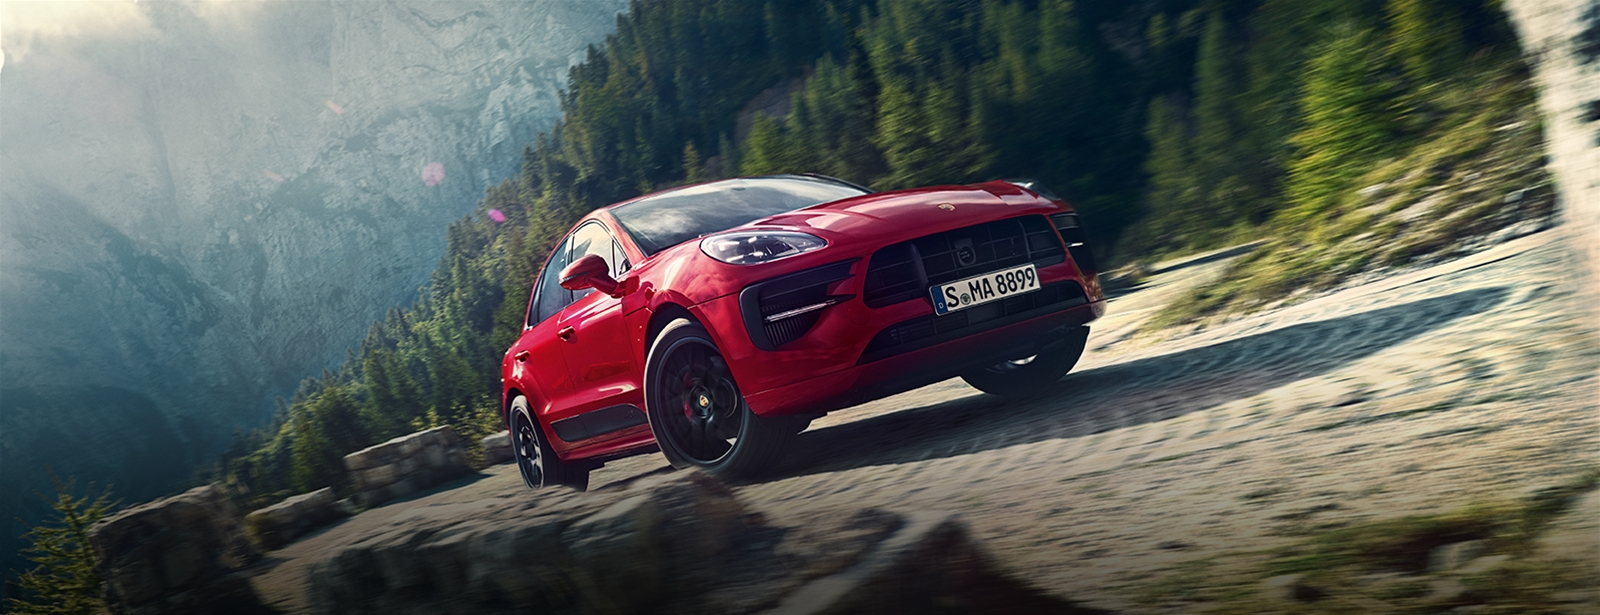 More of what you love. - De nieuwe Macan GTS.